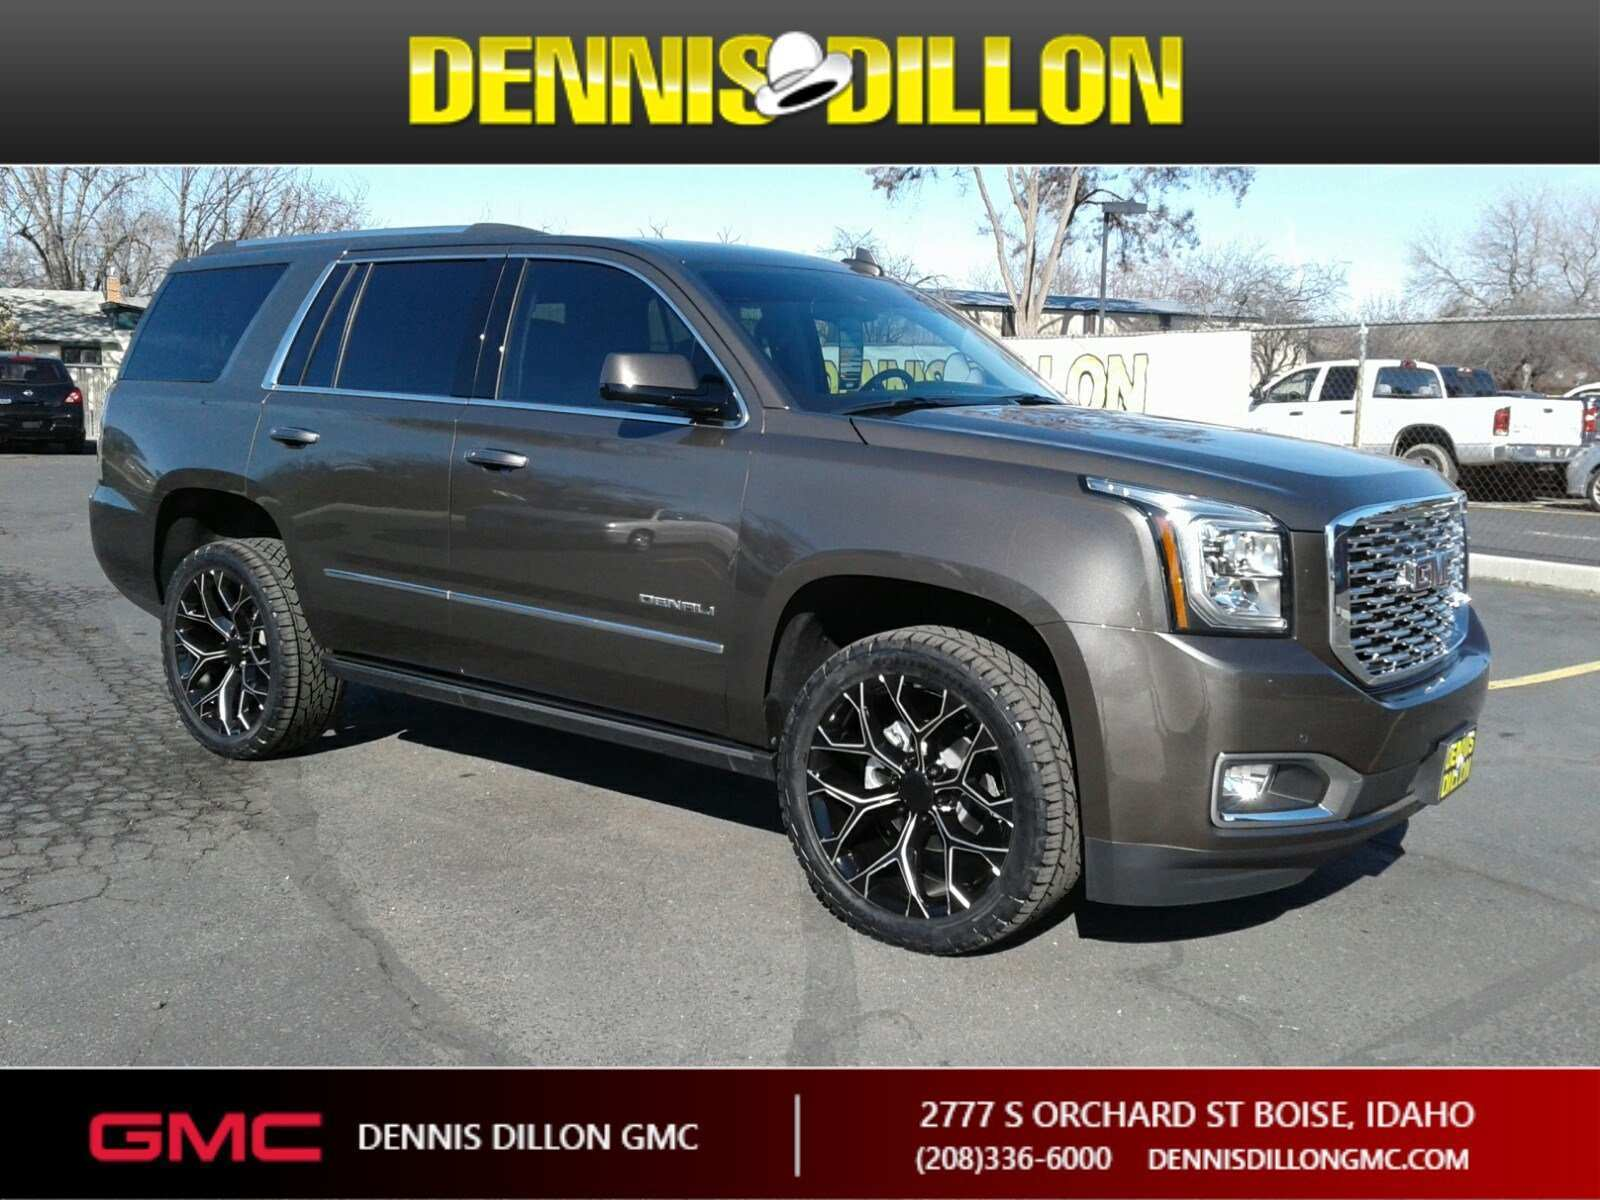 98 The Best 2019 GMC Yukon Denali Redesign